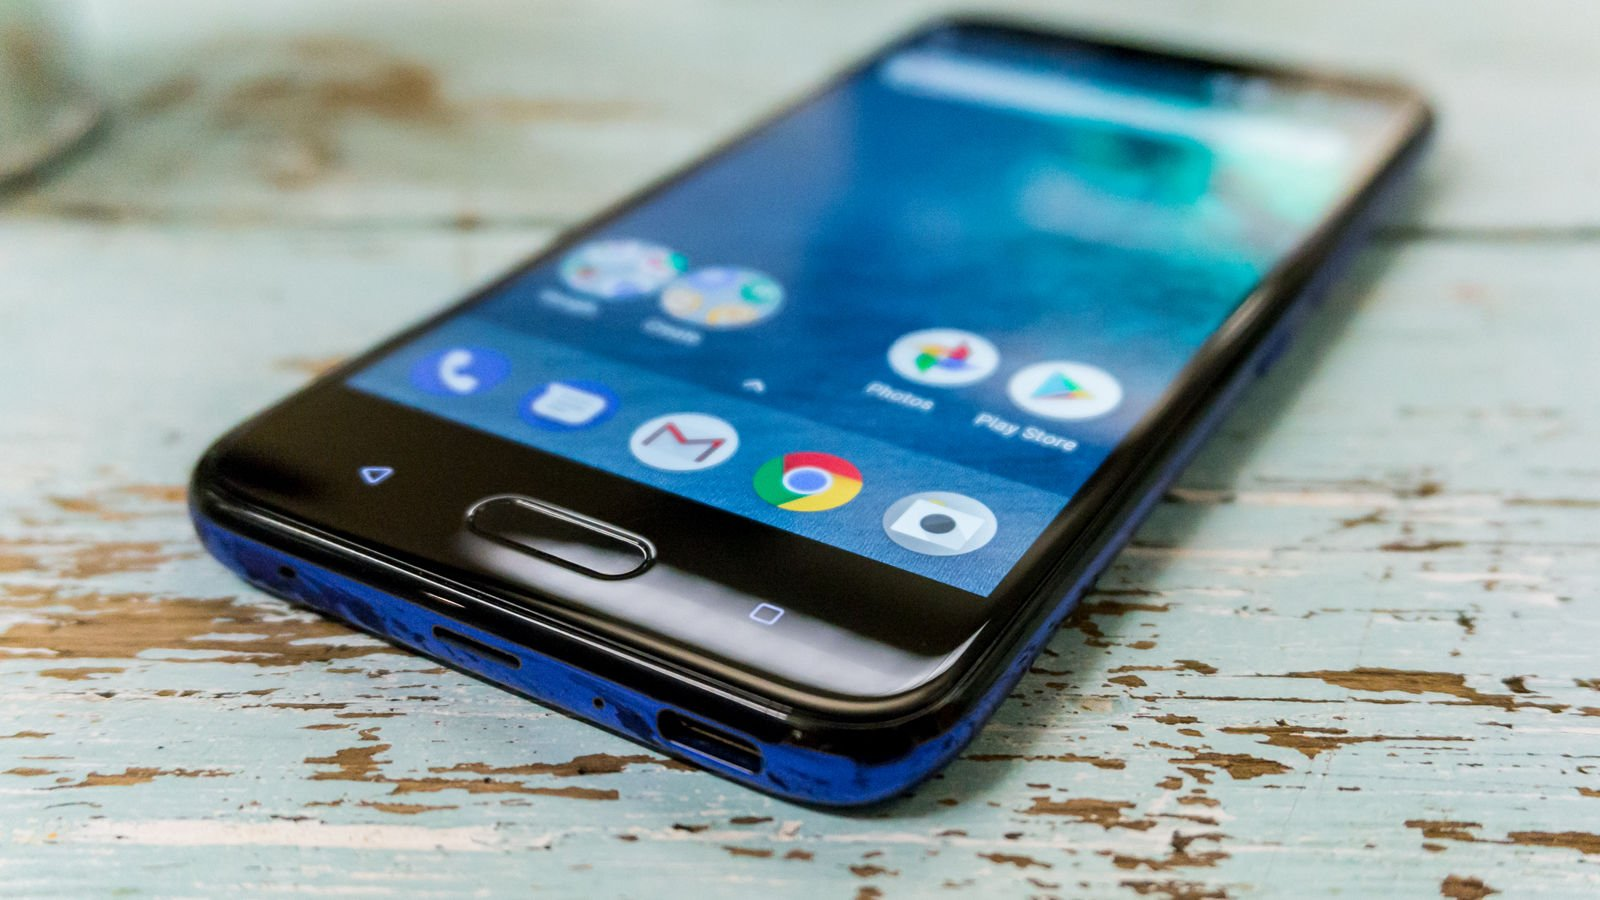 How to Root HTC U11 Life with Magisk without TWRP